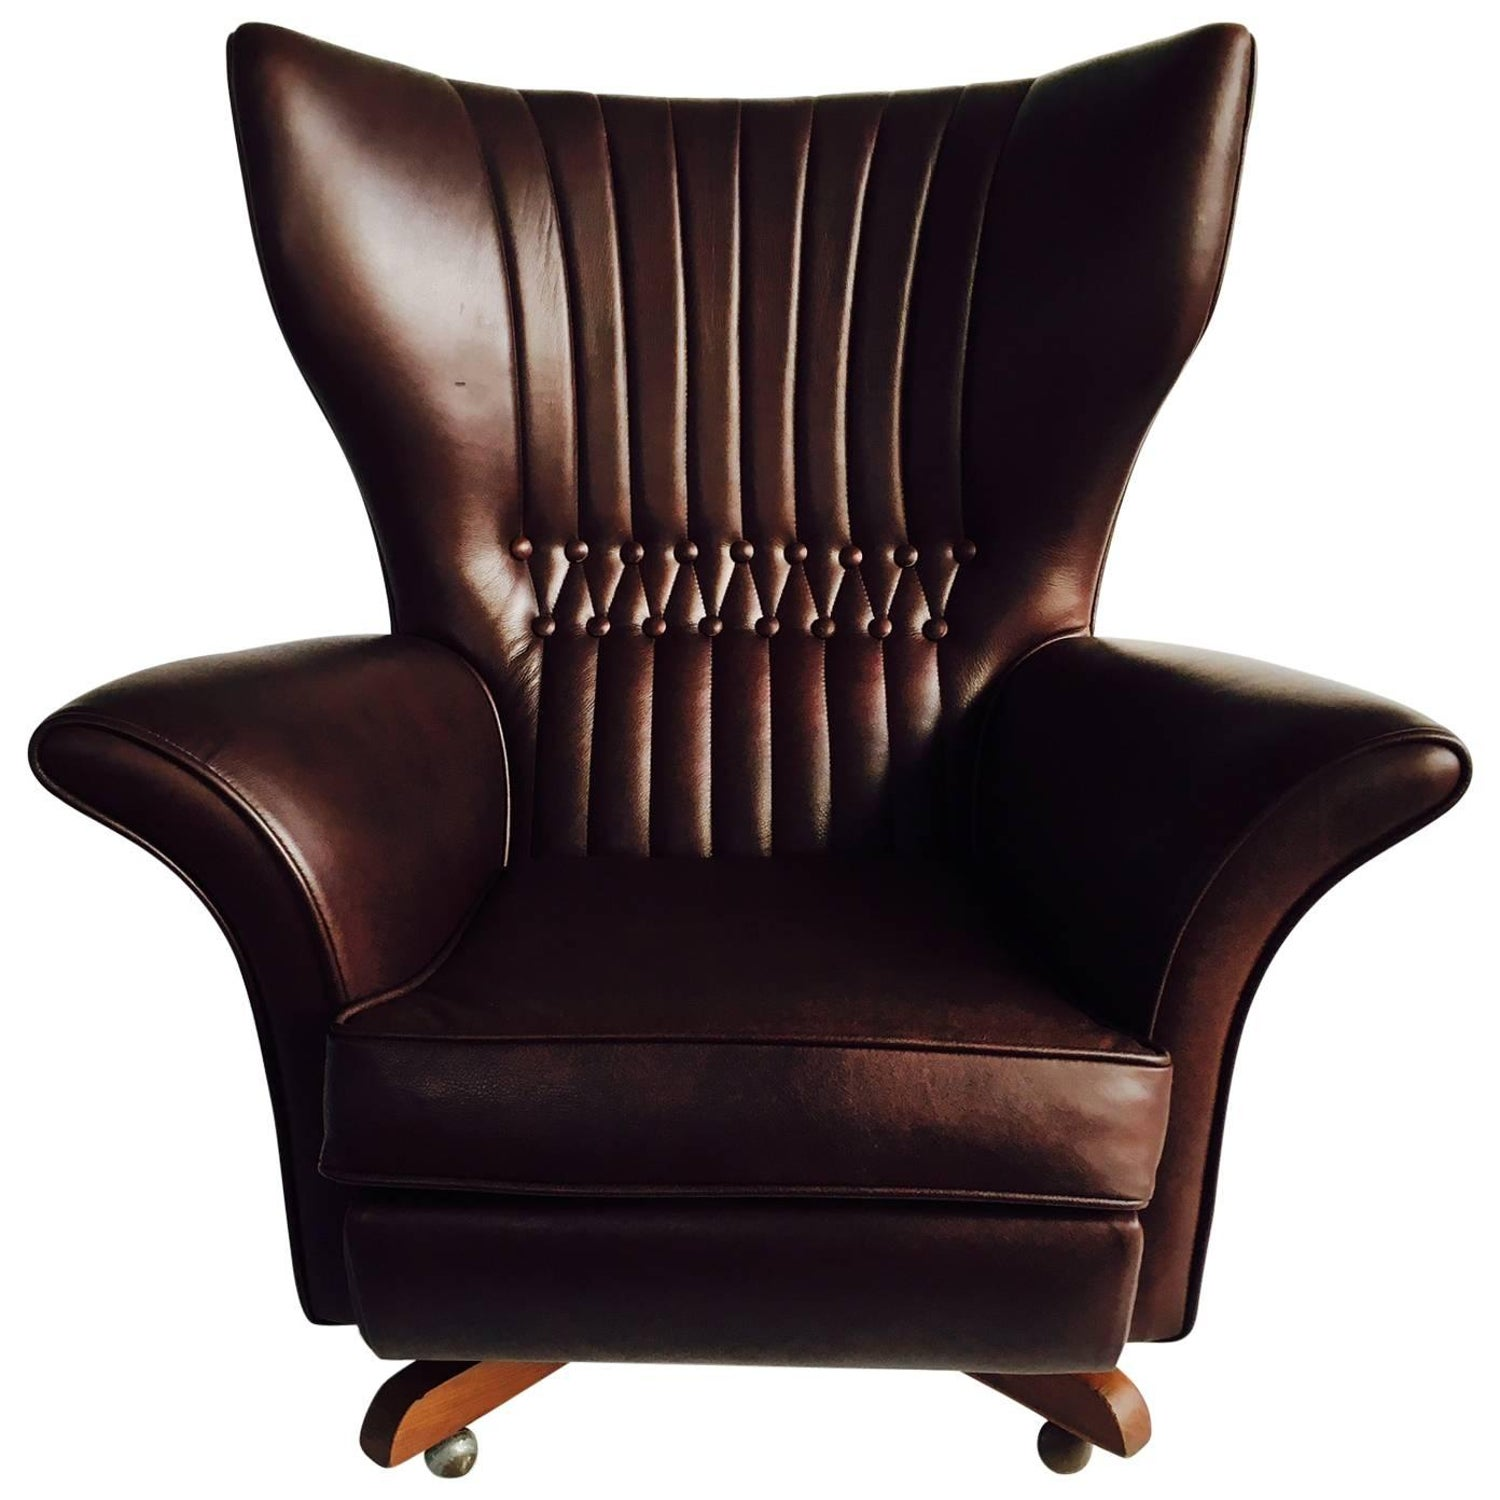 1960s G Plan Most fortable Chair in the World 6250 Swivel